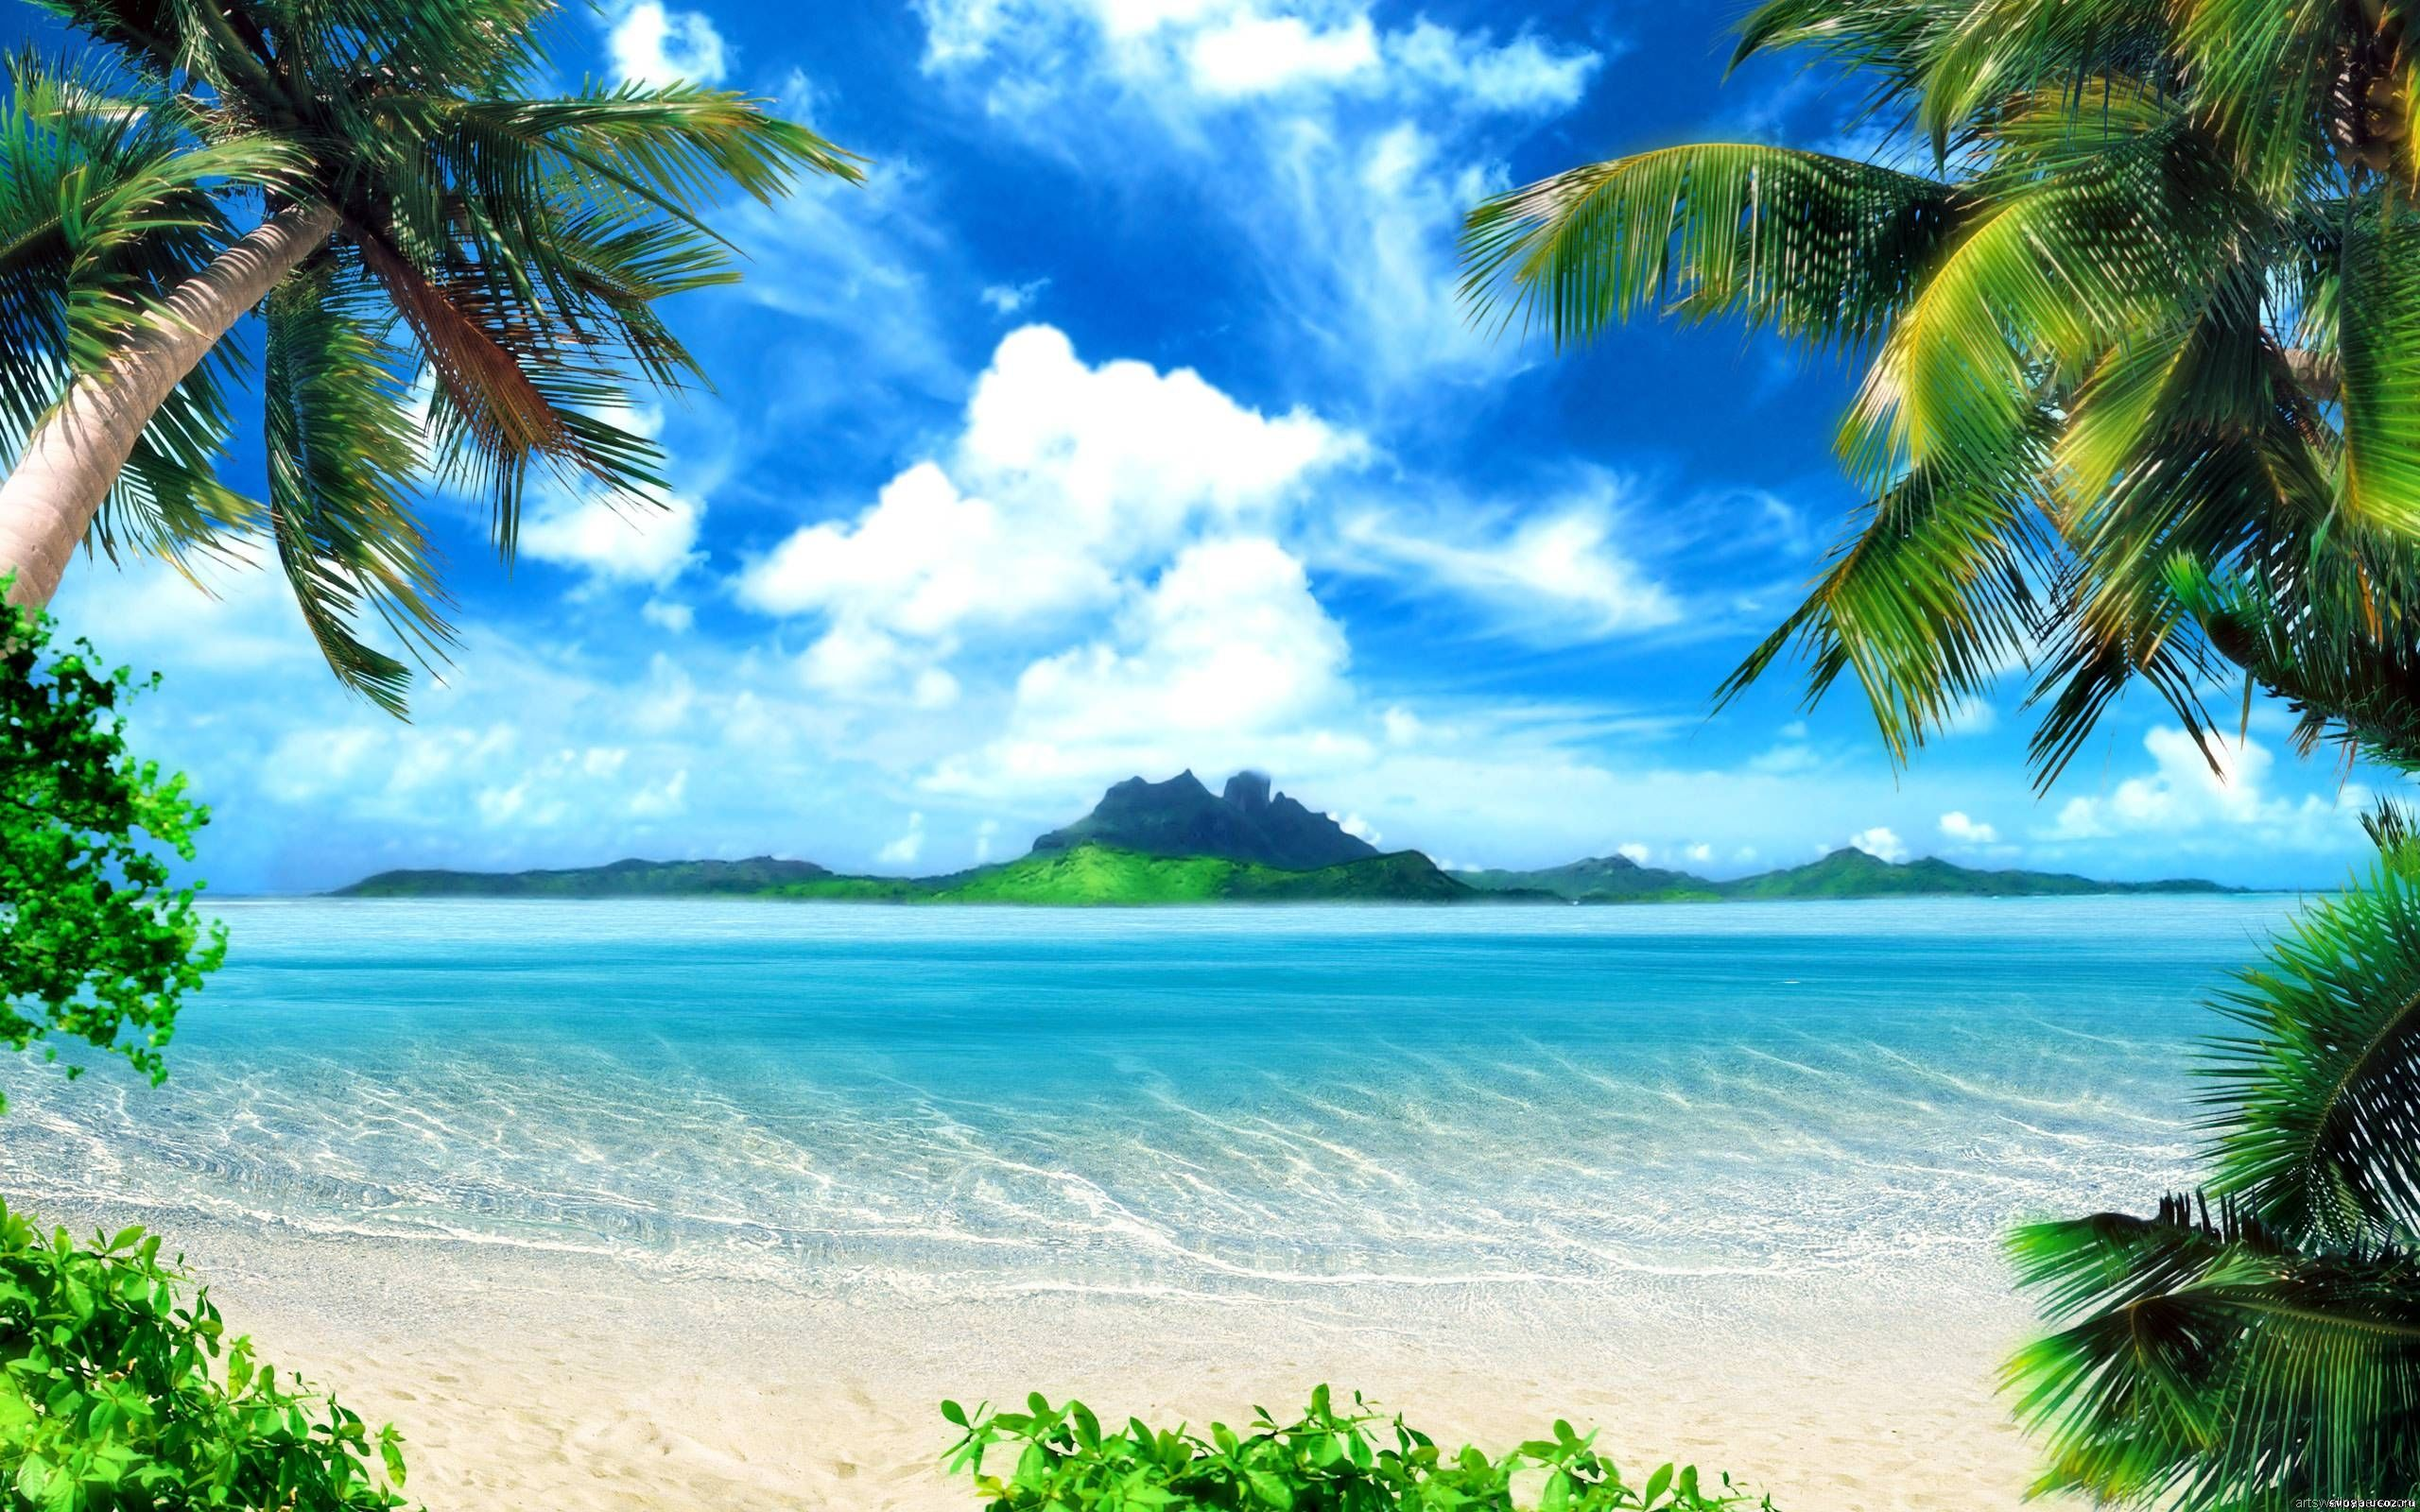 50 AMAZING BEACH WALLPAPERS FREE TO DOWNLOAD Travel